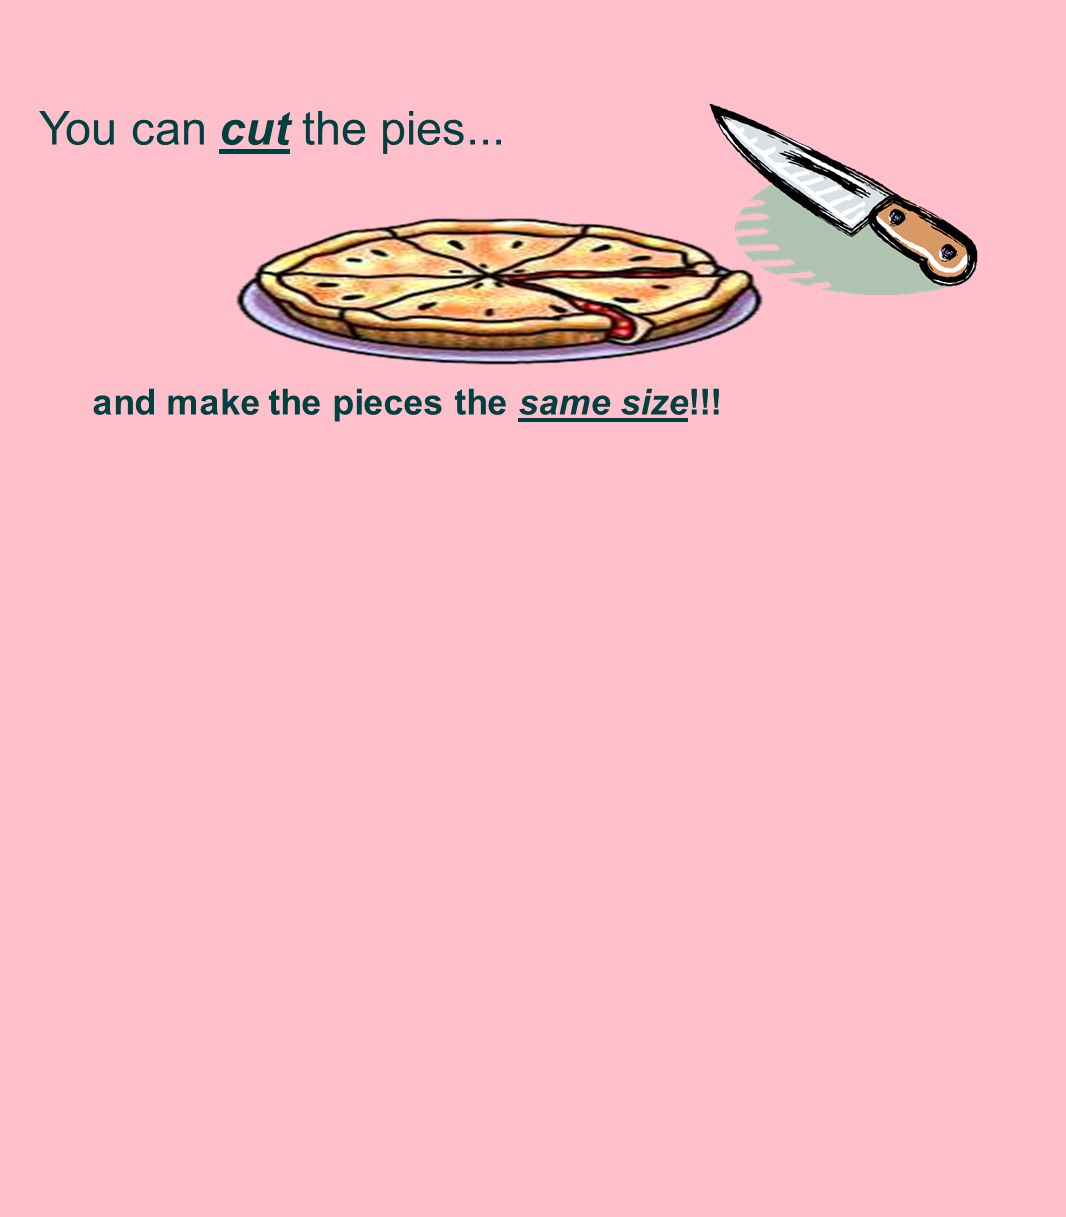 You can cut the pies... and make the pieces the same size!!!